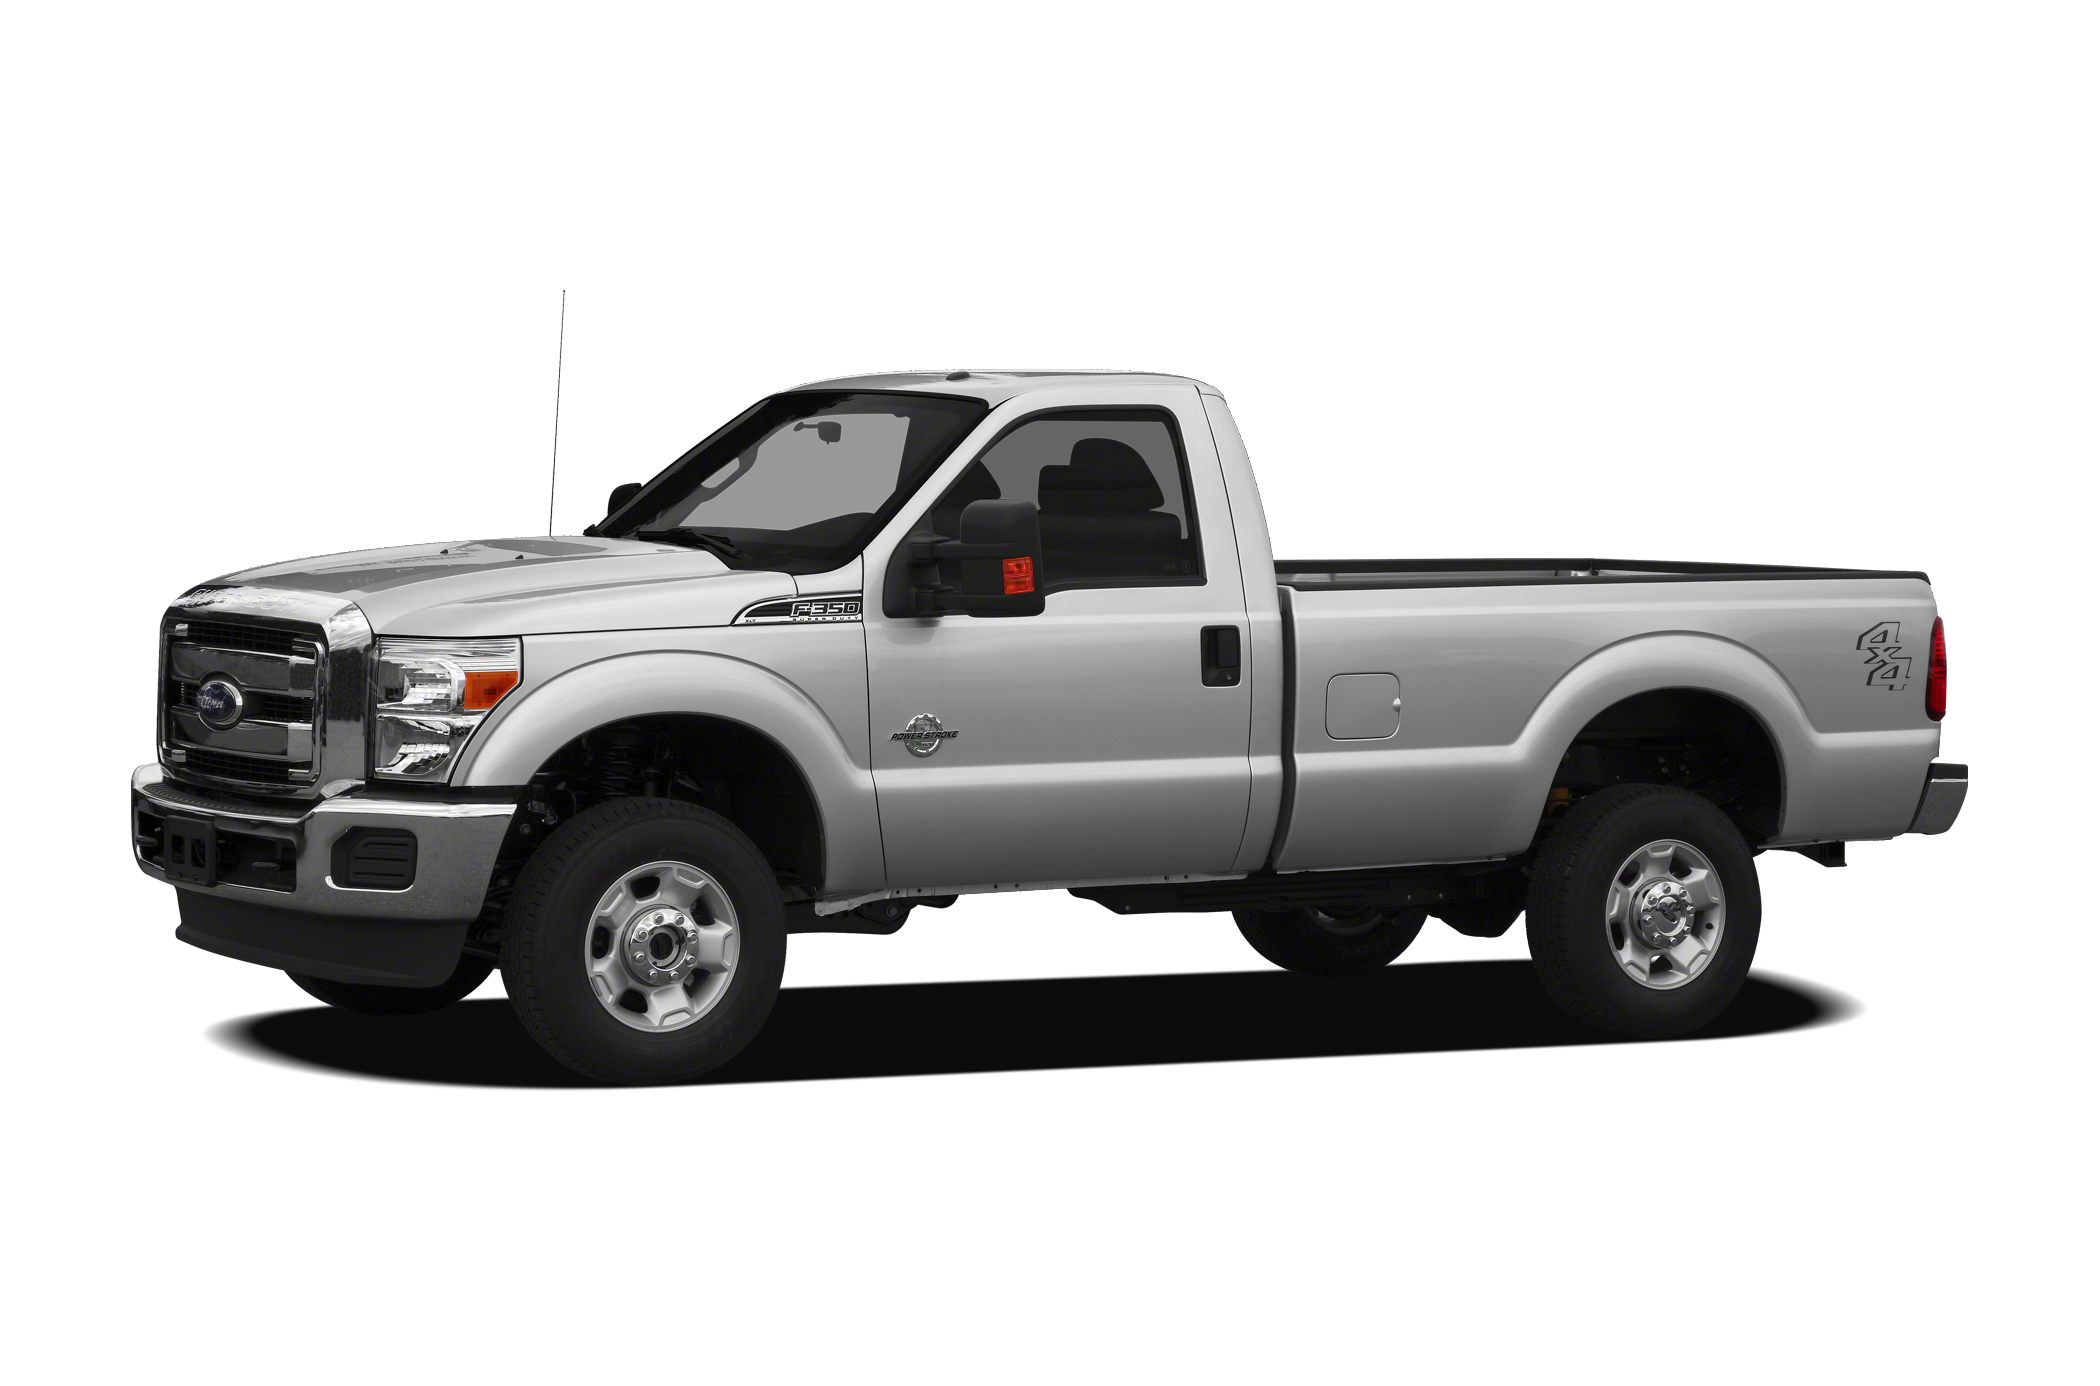 2012 Ford F350 XLT Crew Cab Pickup for sale in Shelton for $41,999 with 37,610 miles.